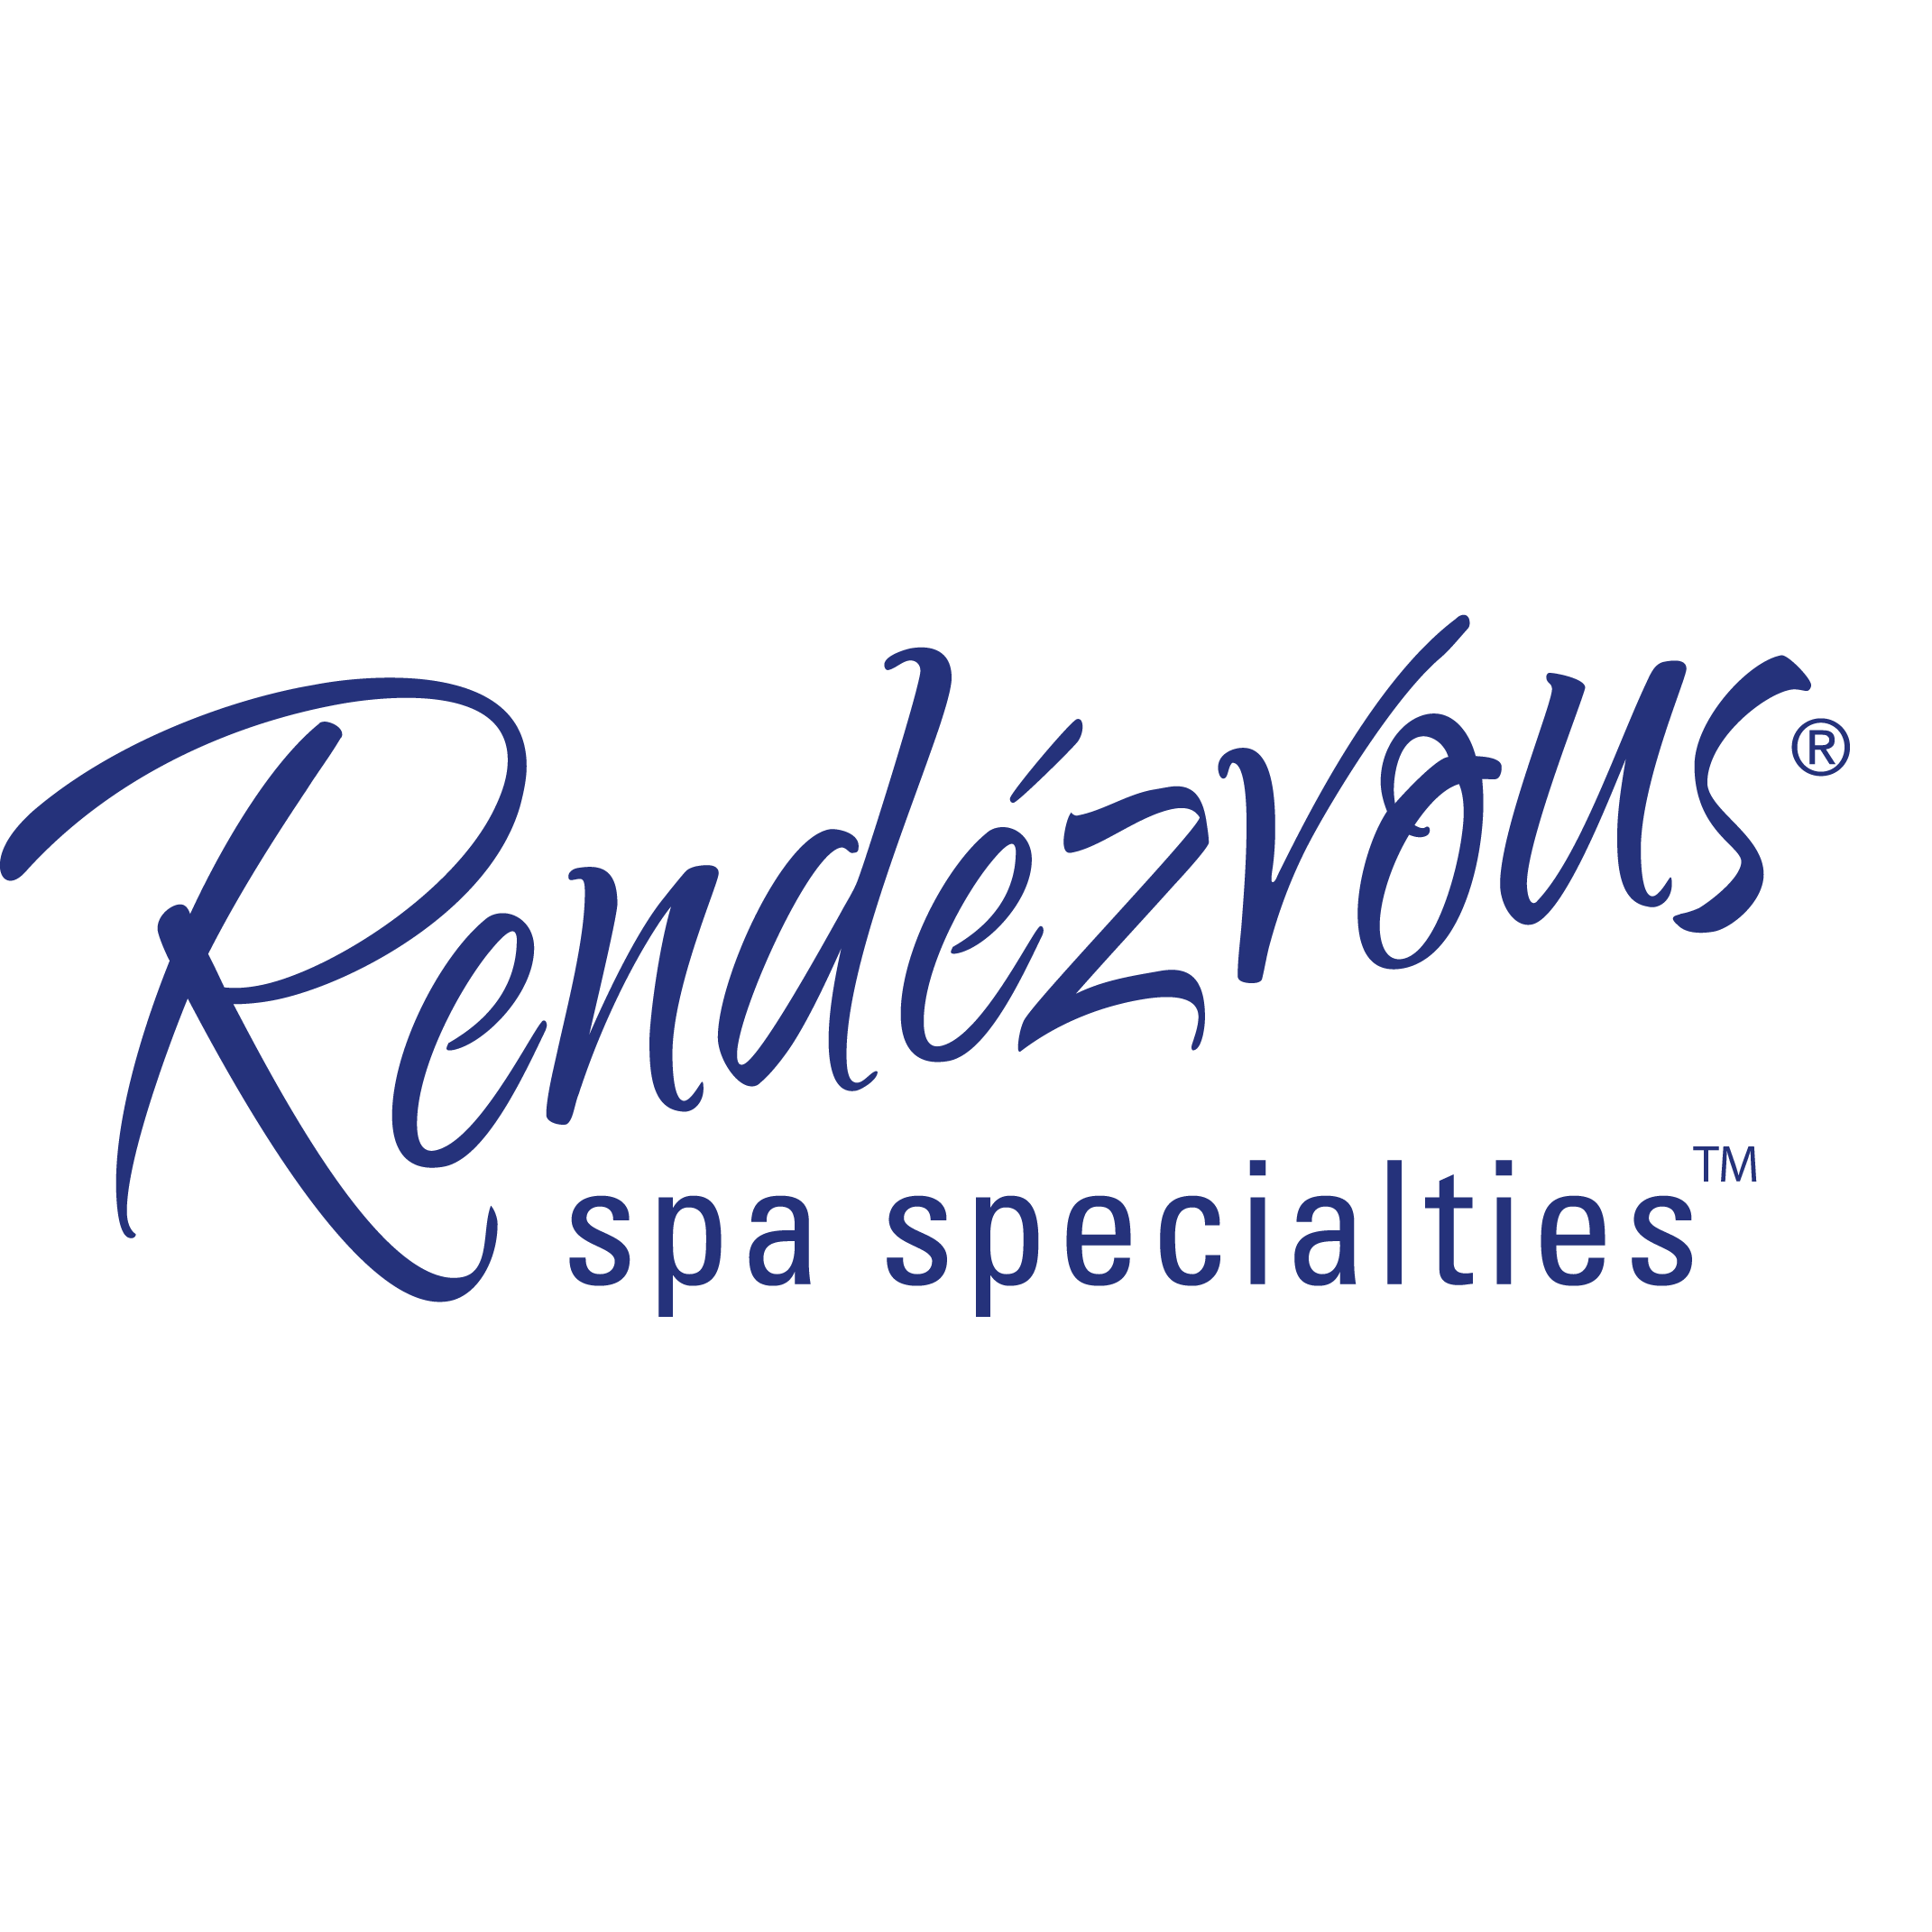 Rendezvous Spa Specialties Hot Tub Chemicals Logo